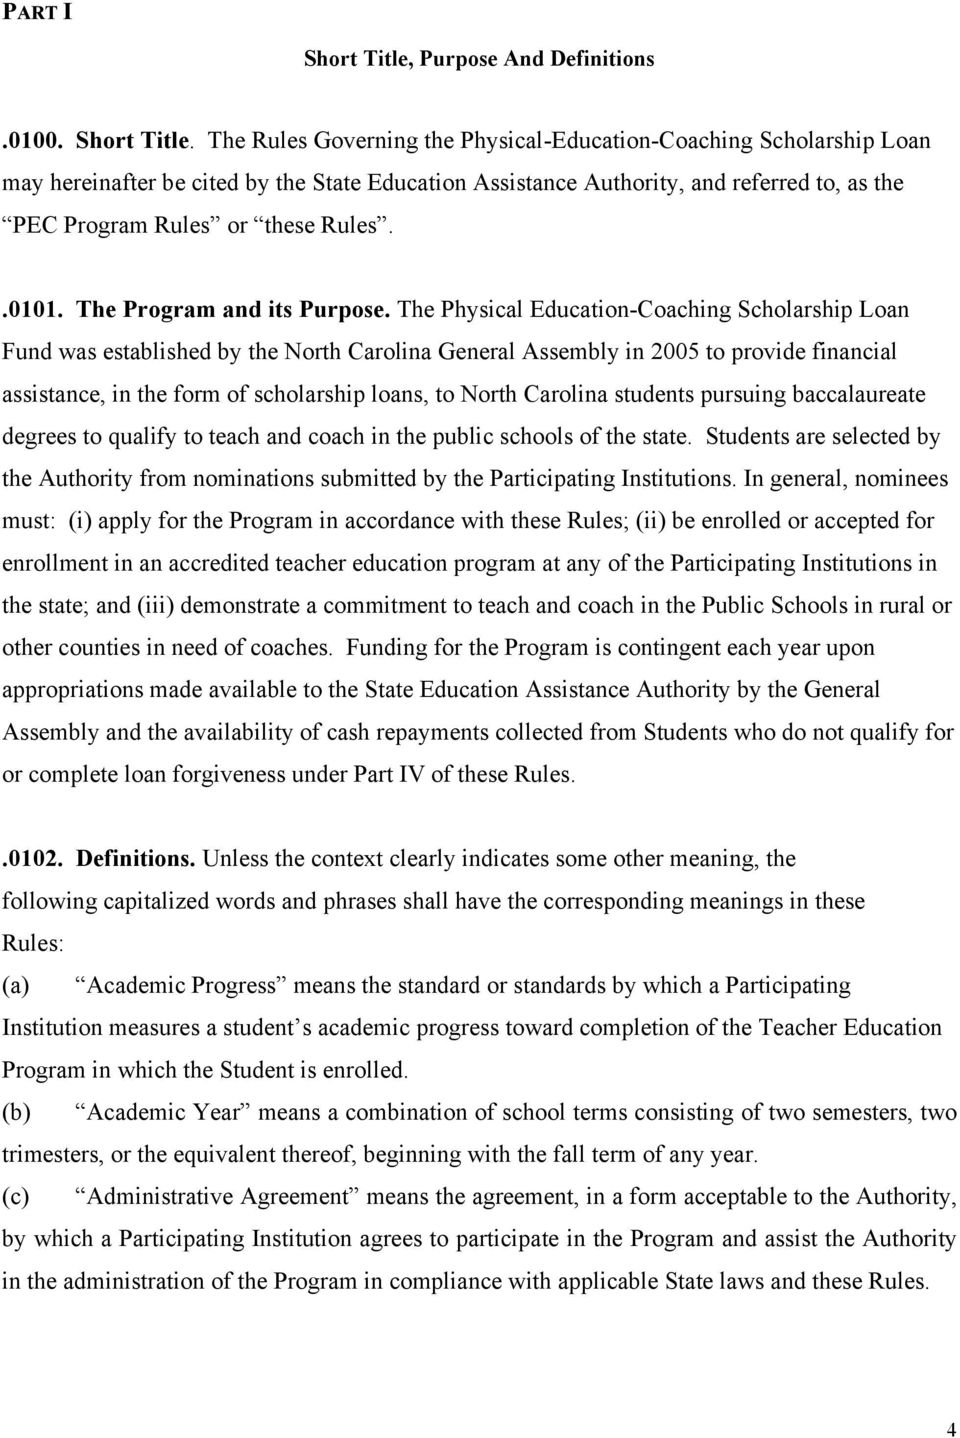 The Rules Governing the Physical-Education-Coaching Scholarship Loan may hereinafter be cited by the State Education Assistance Authority, and referred to, as the PEC Program Rules or these Rules.